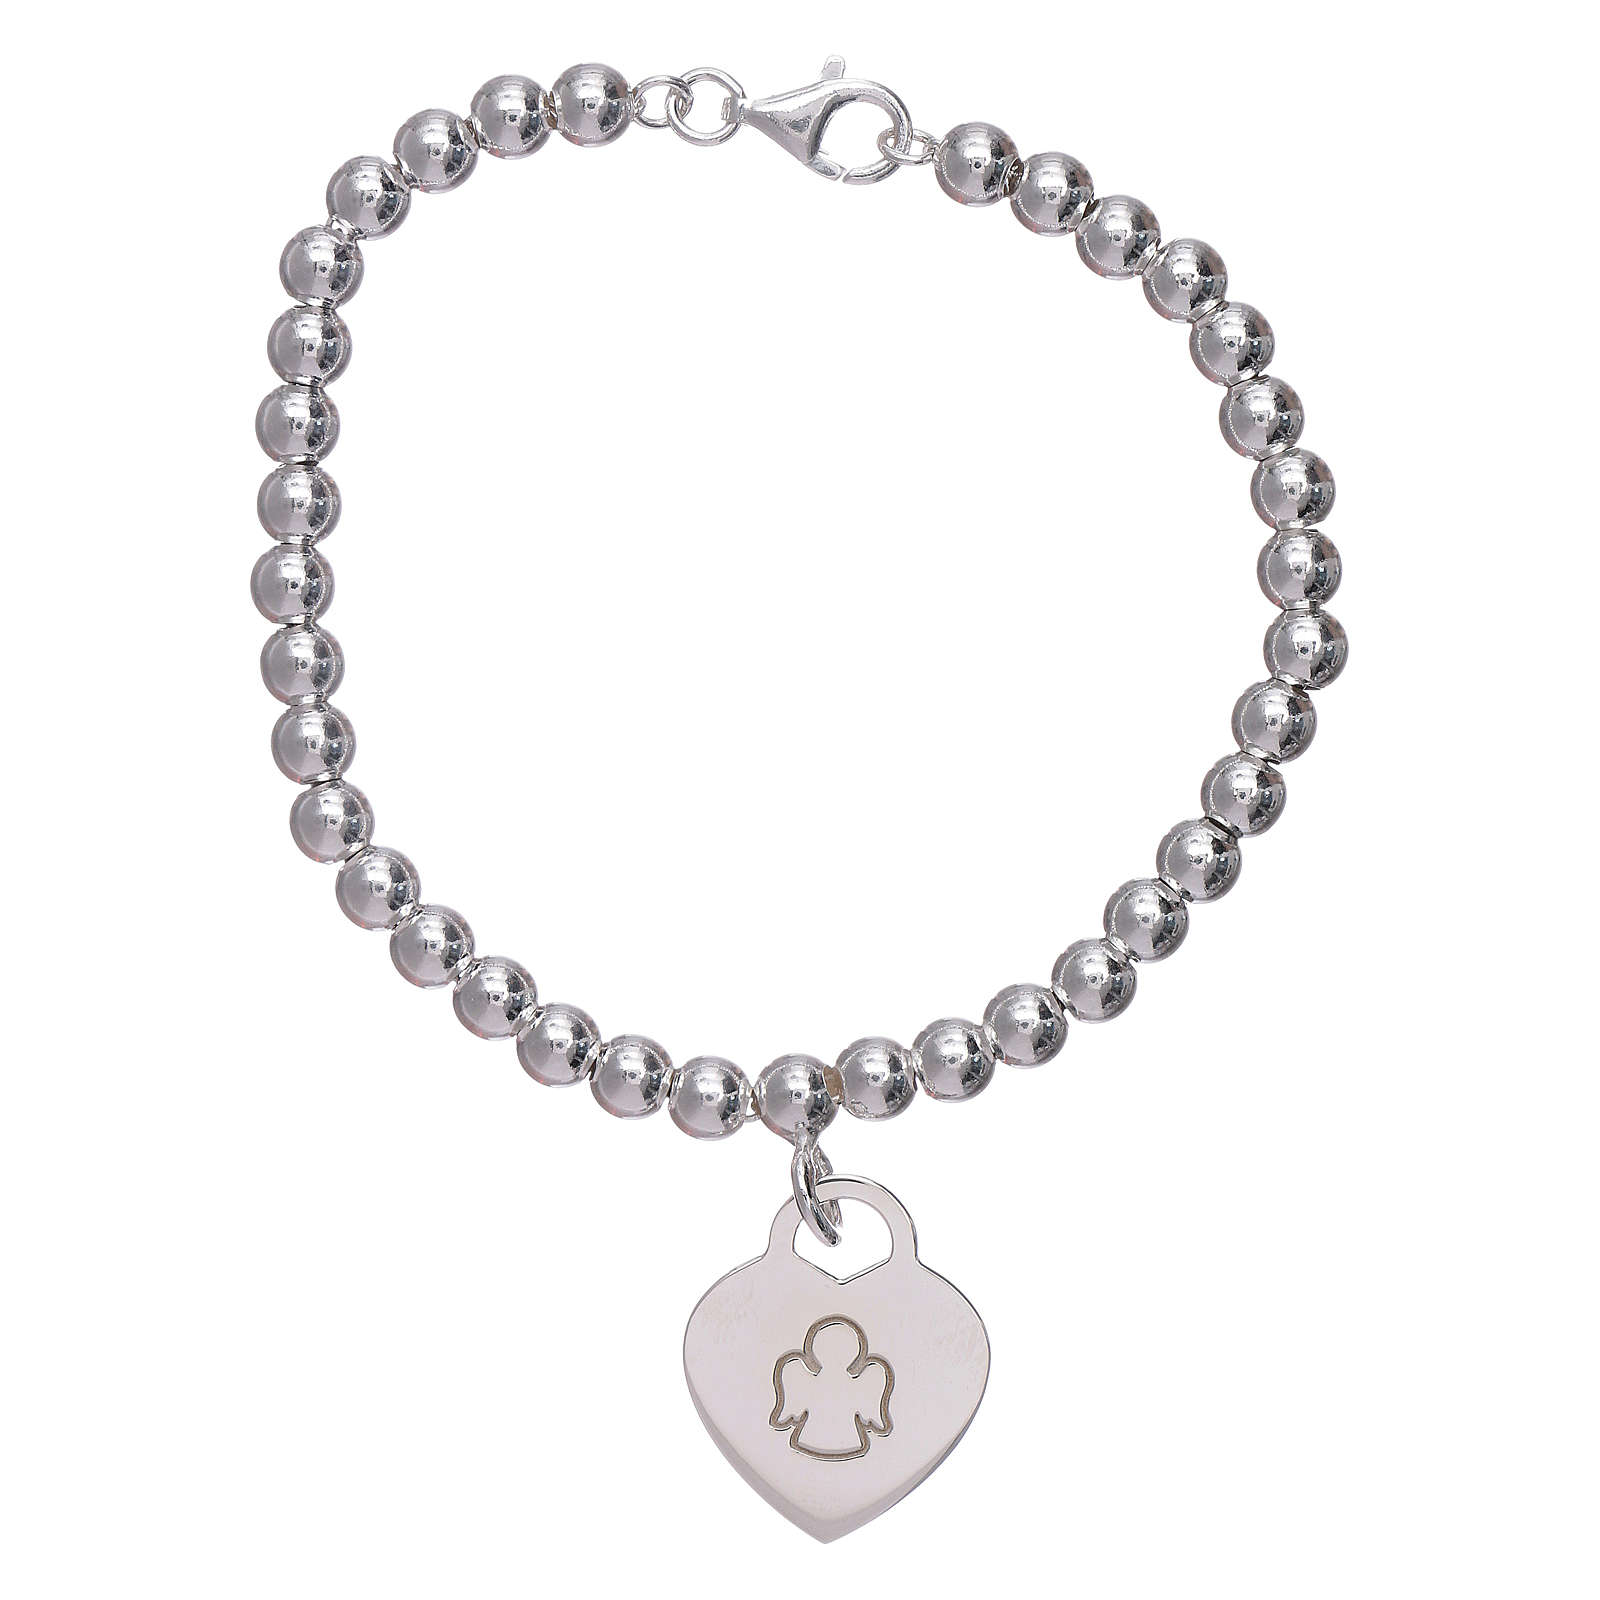 AMEN 925 sterling silver bracelet finished in rhodium with a pendant heart 4